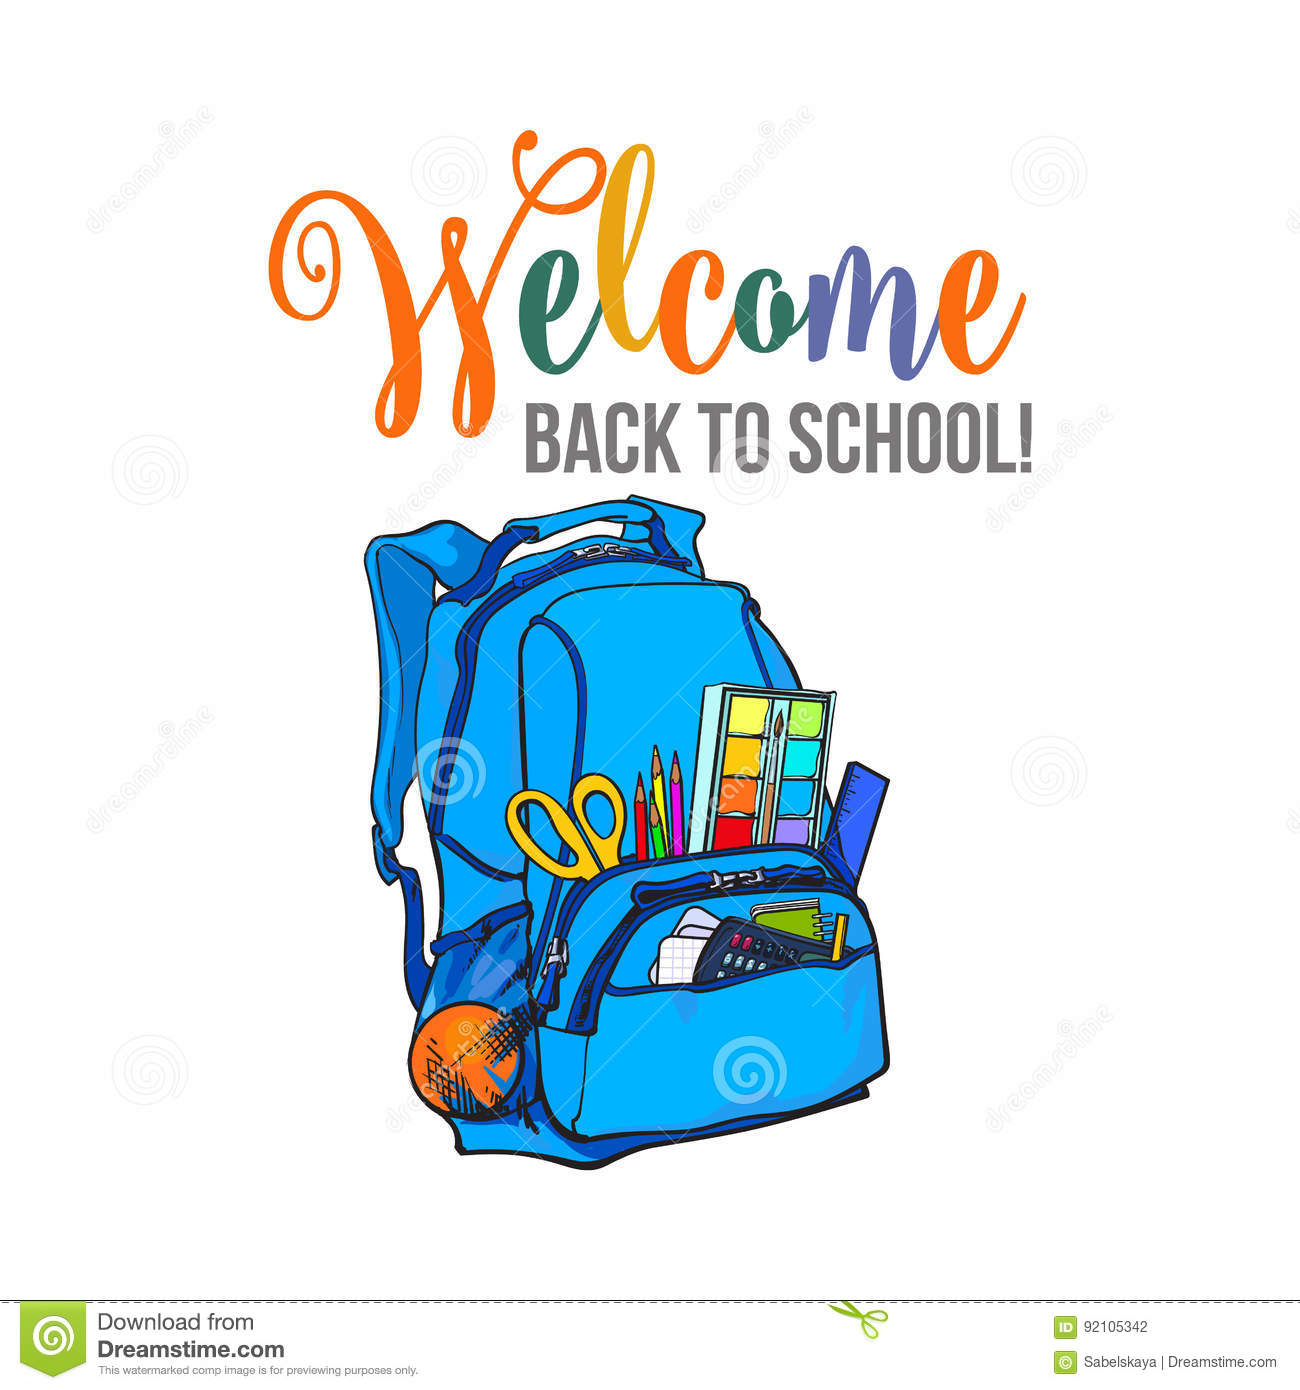 Welcome Back To School Poster, Banner, Postcard Design